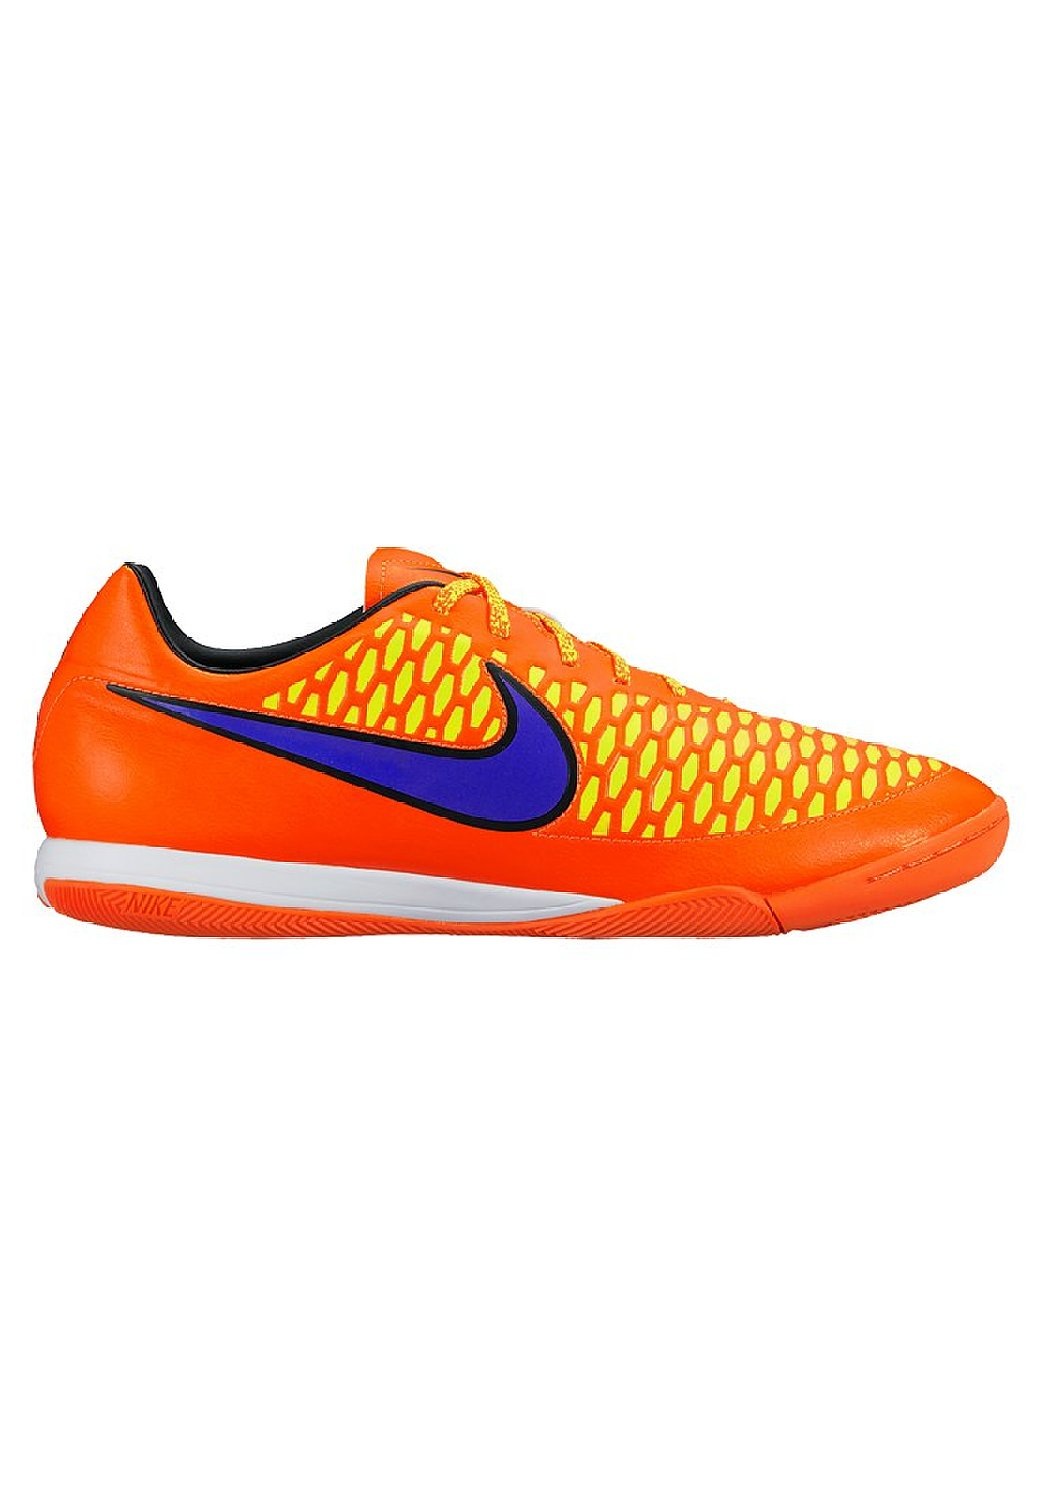 promo code c9d2c 184df Get Quotations · Nike Mens Magista Onda IC Indoor Soccer Shoes 10 1 2 US,  Orange